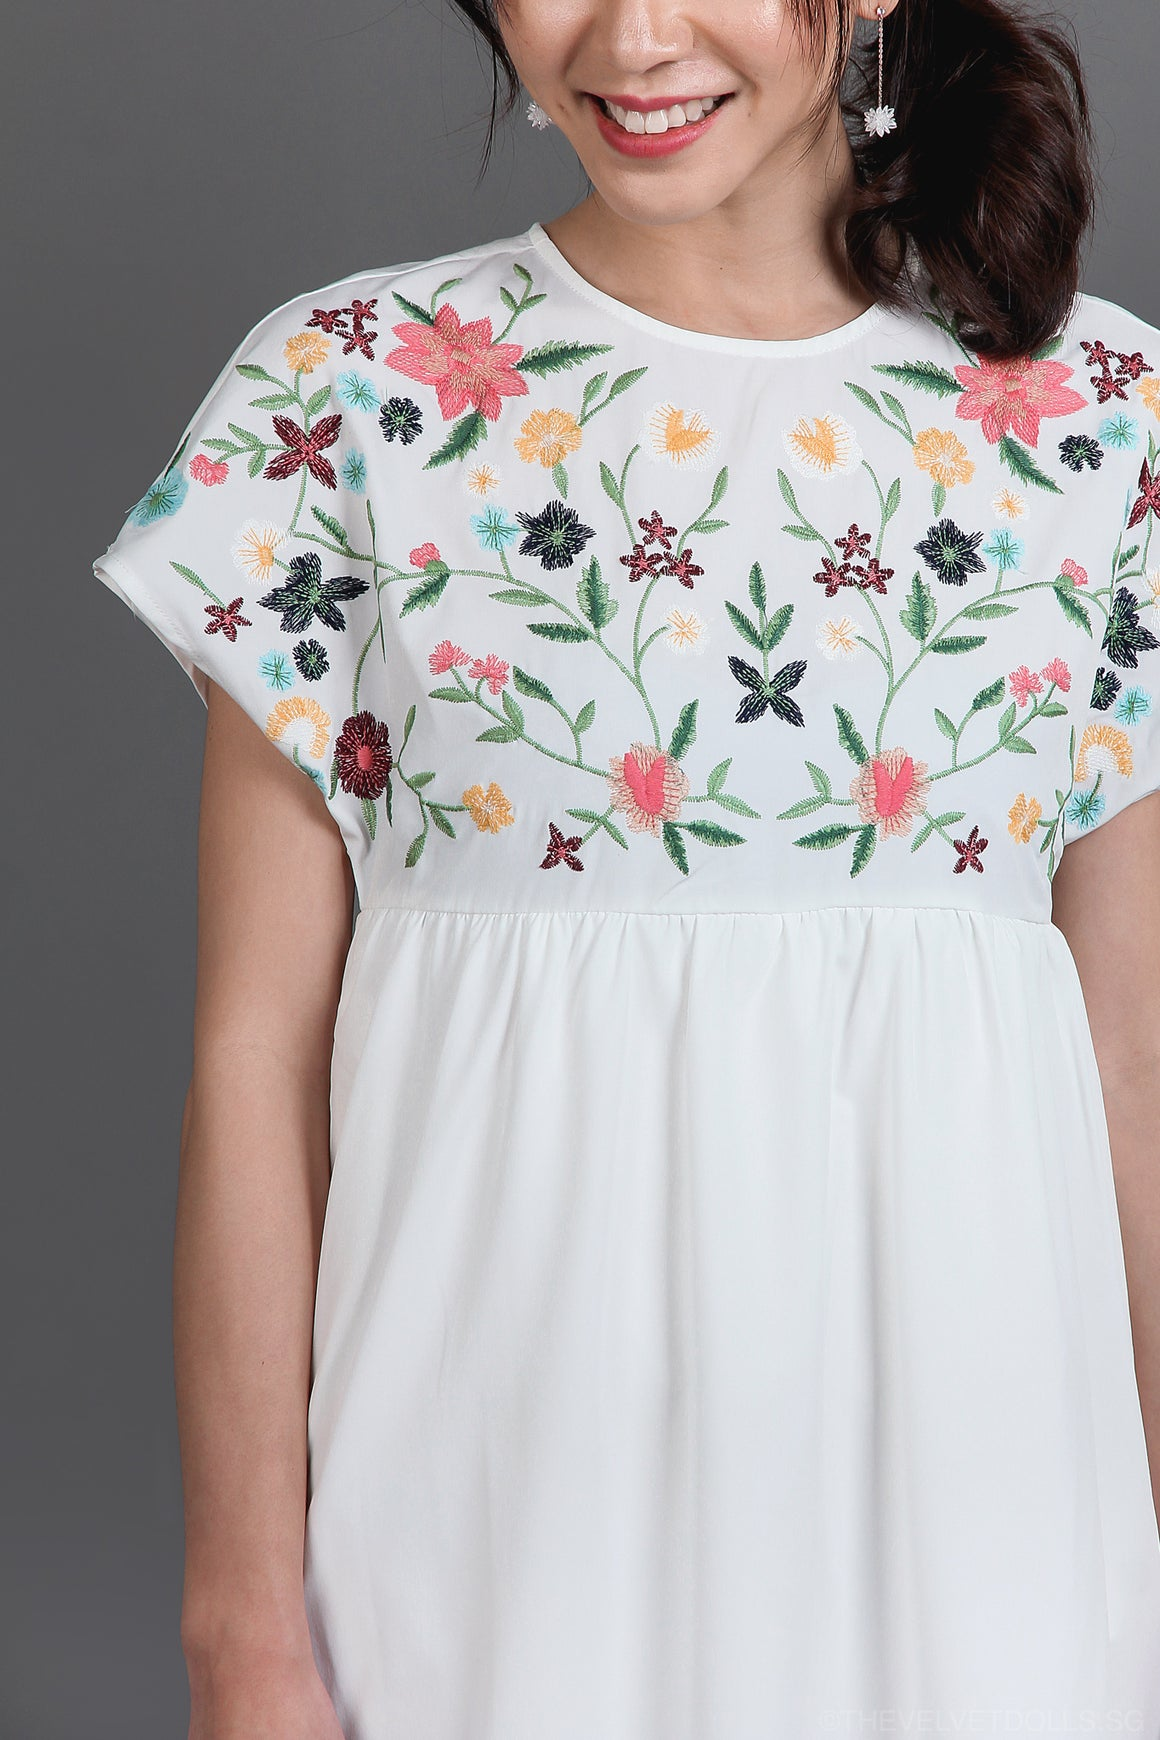 Backorder* Briar Rose Embroidered Playsuit in White